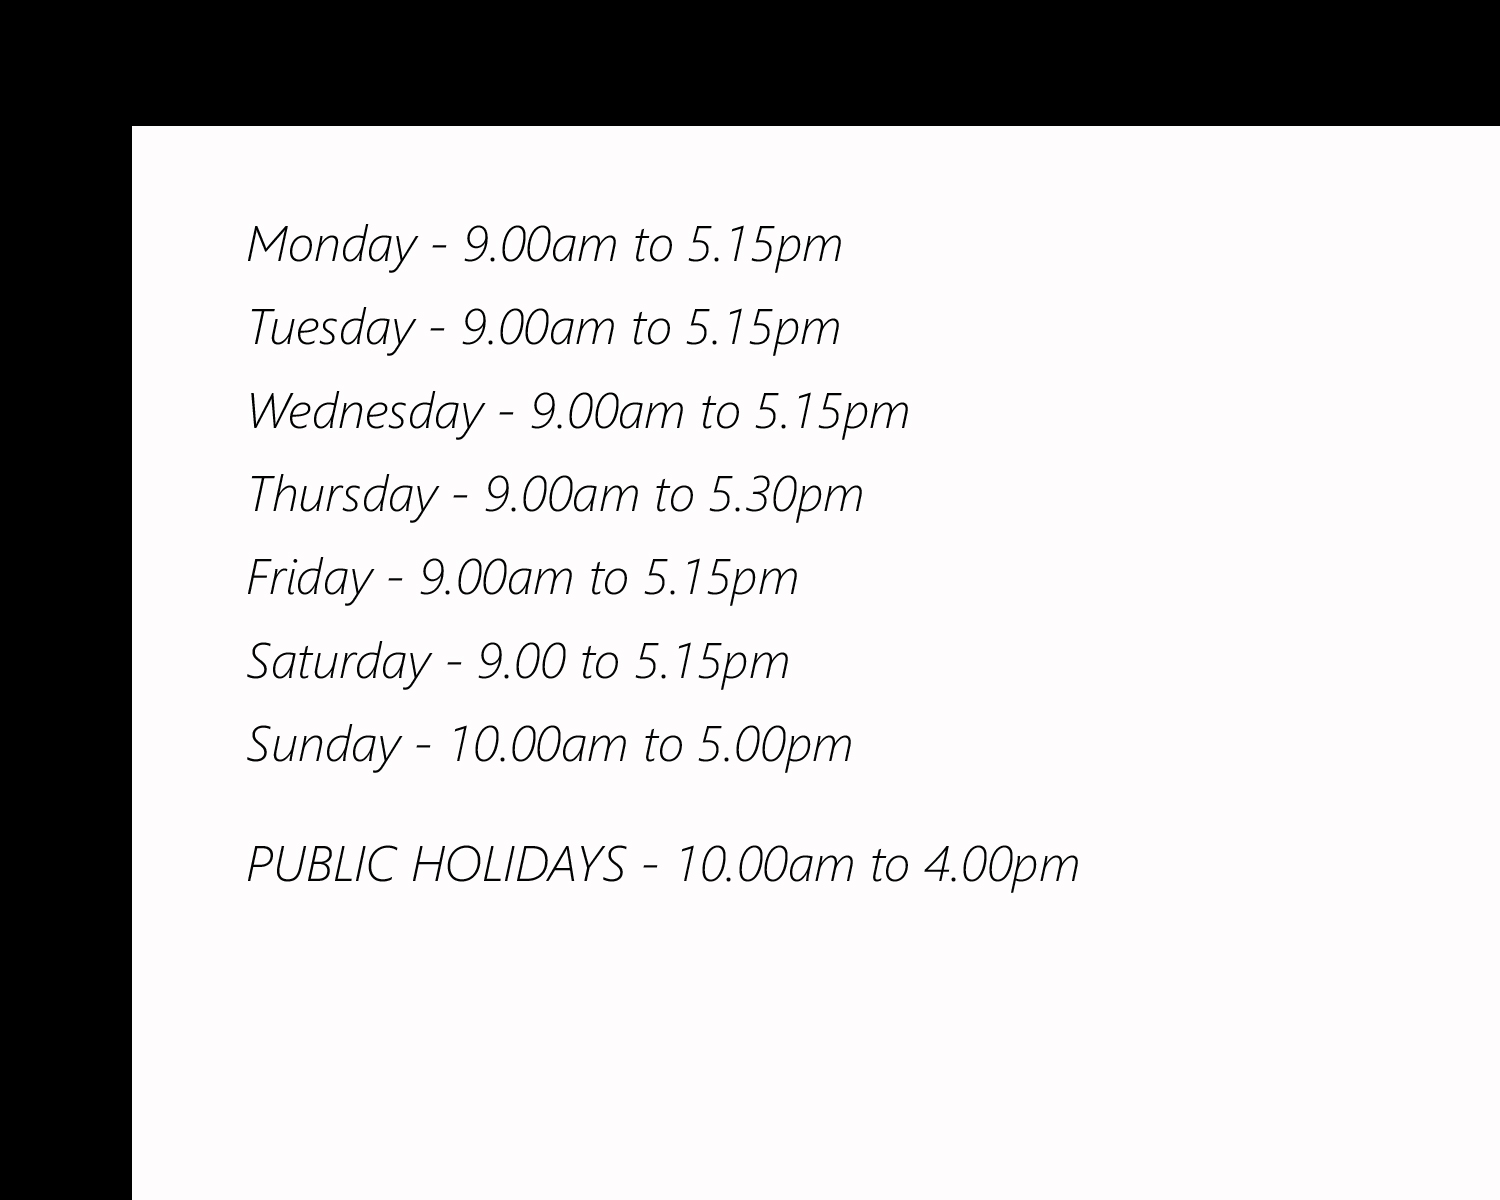 Opening Hours -